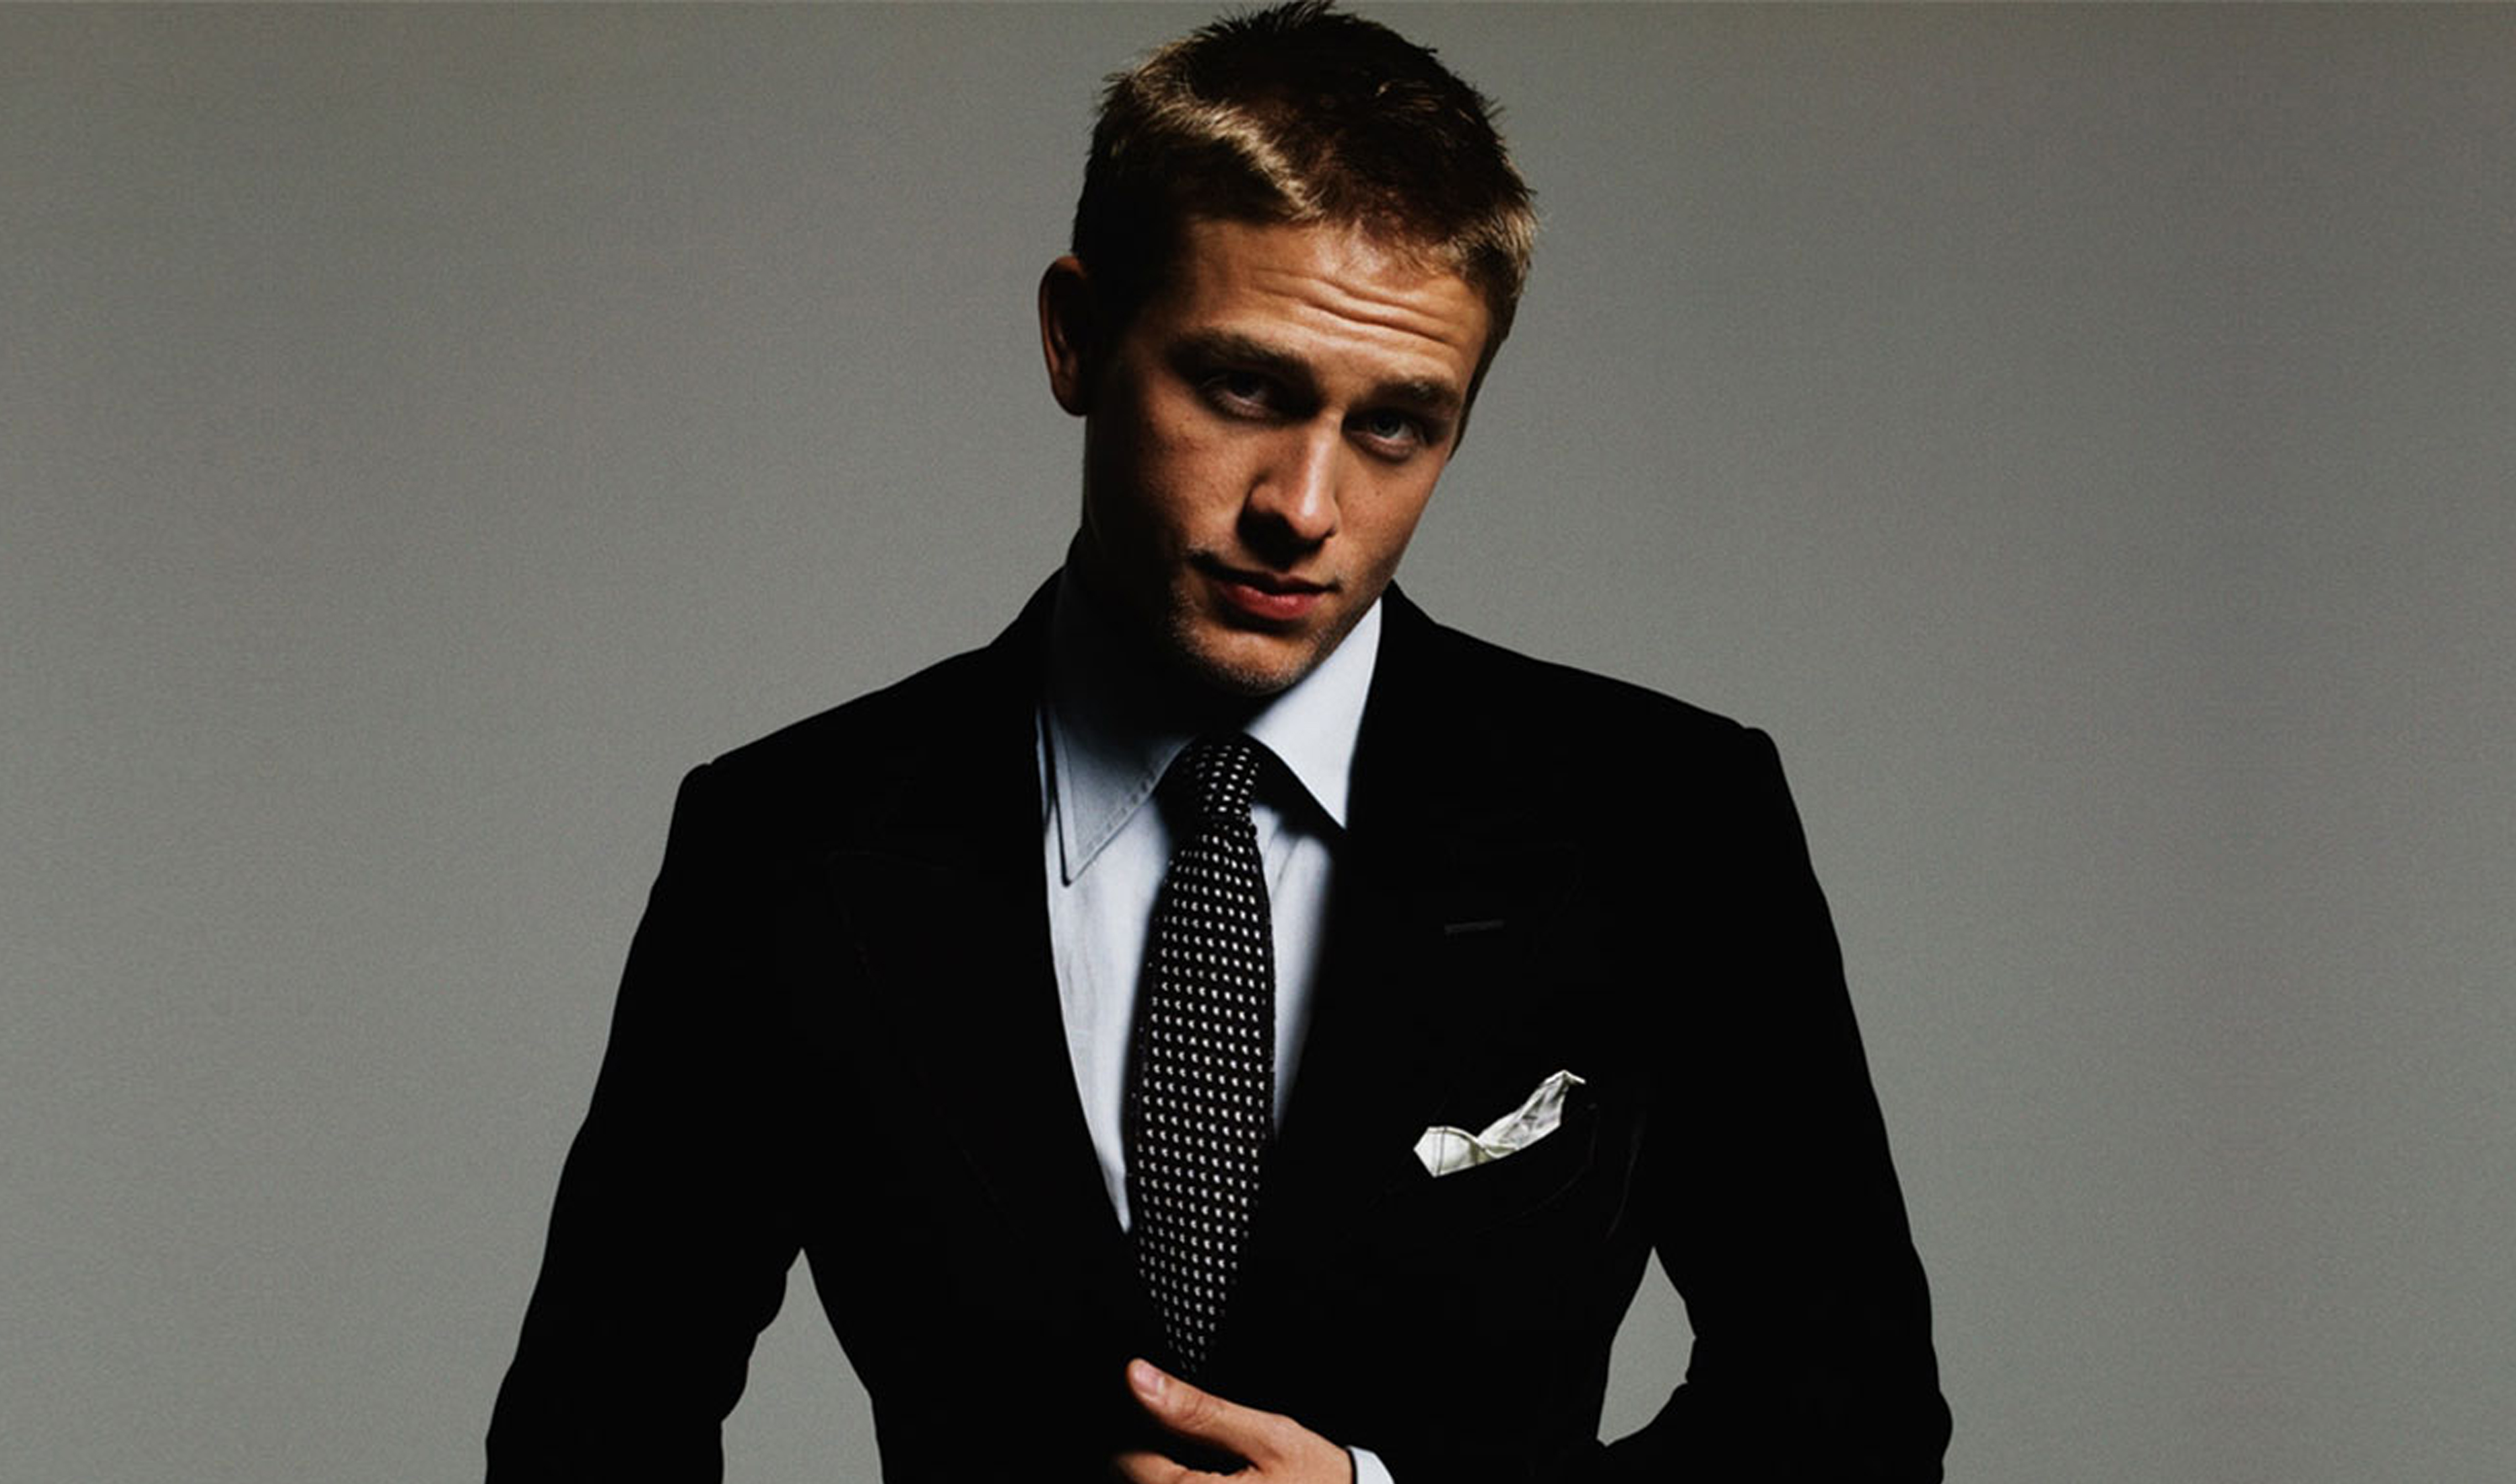 Charlie Hunnam Wallpapers High Resolution and Quality Download 4554x2686